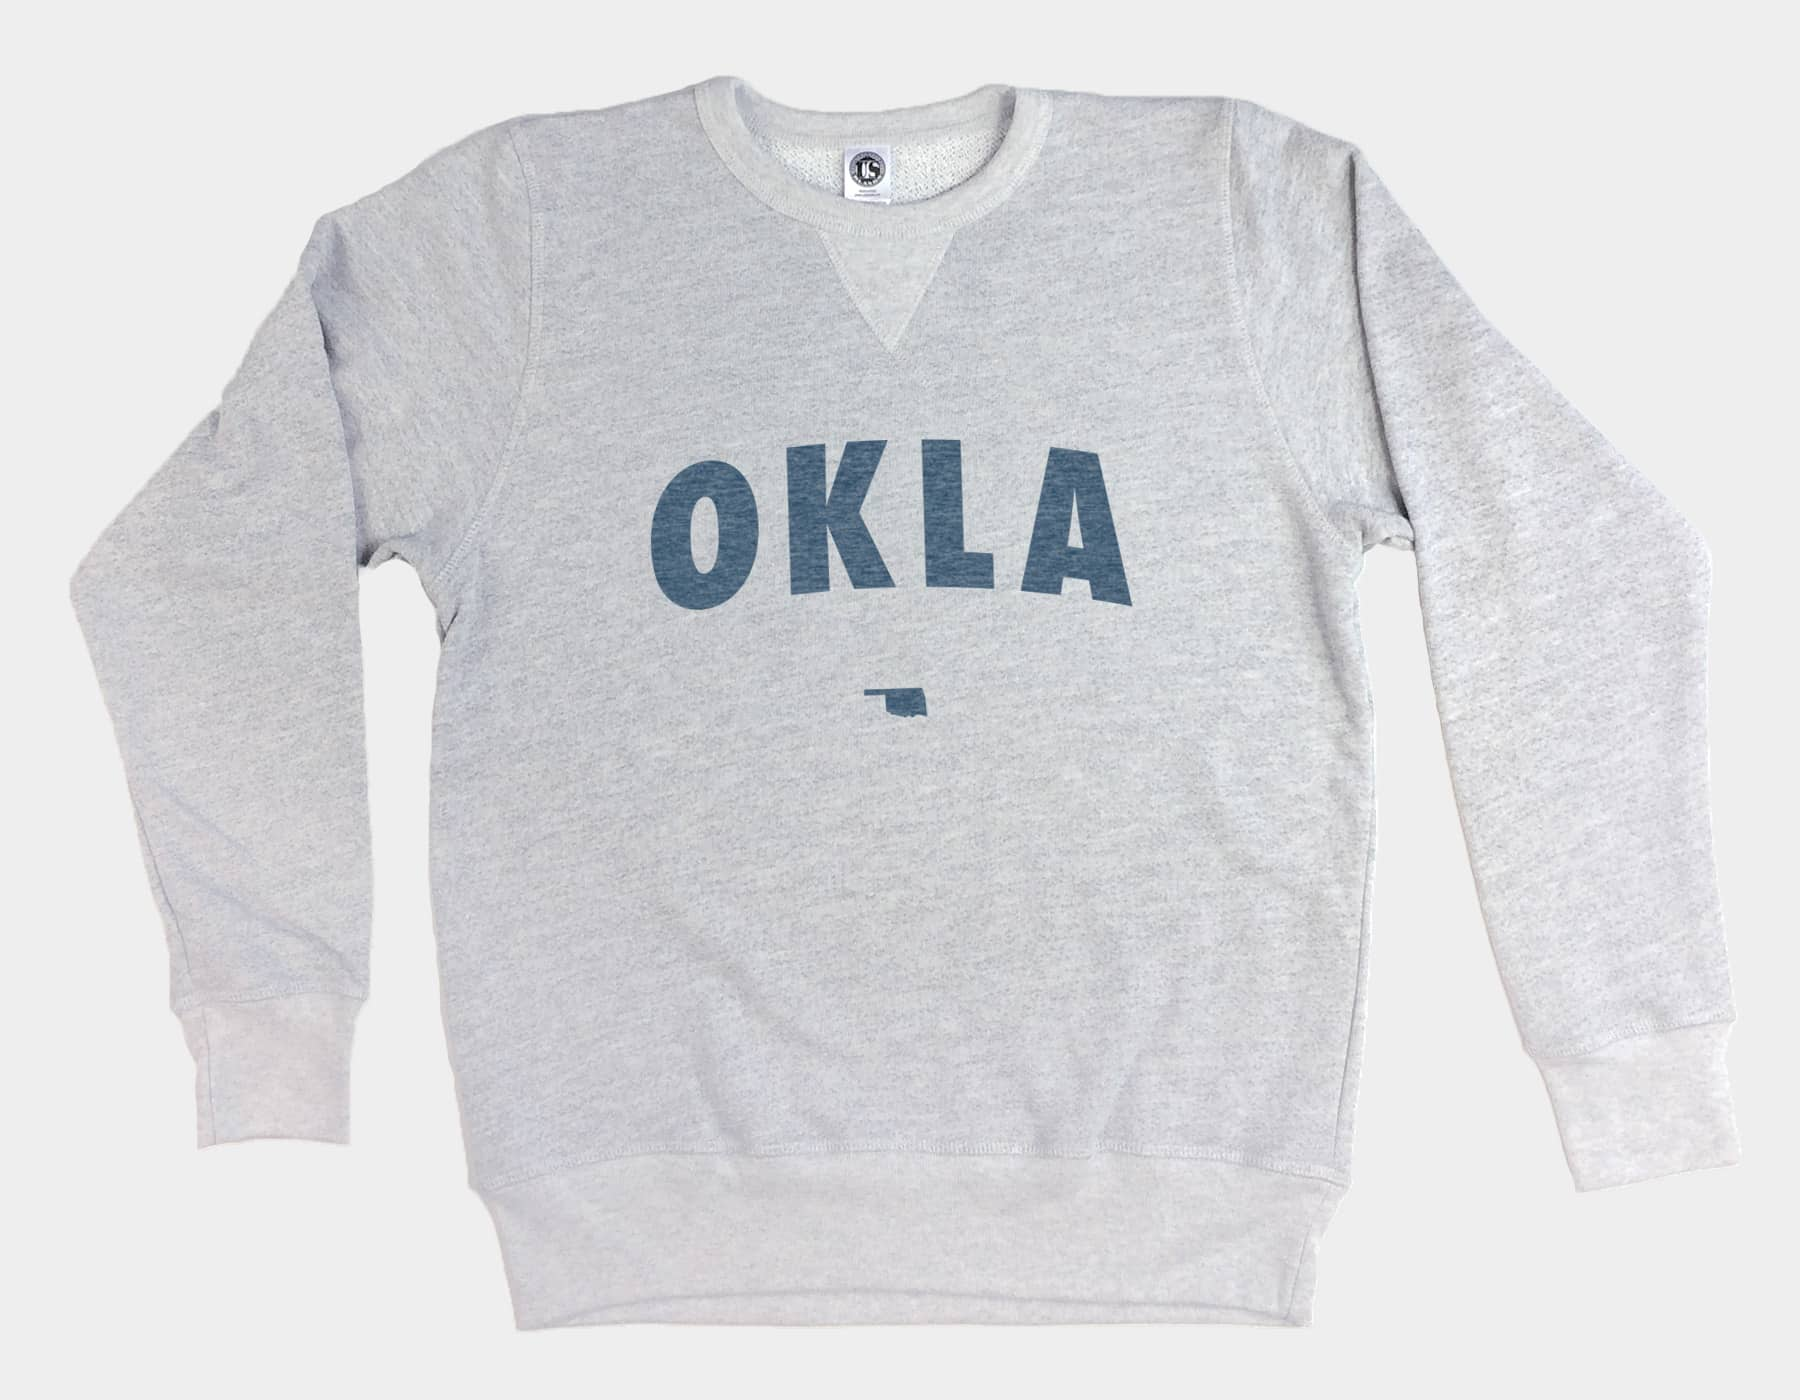 OKLA Pullover Sweatshirt Heather Grey